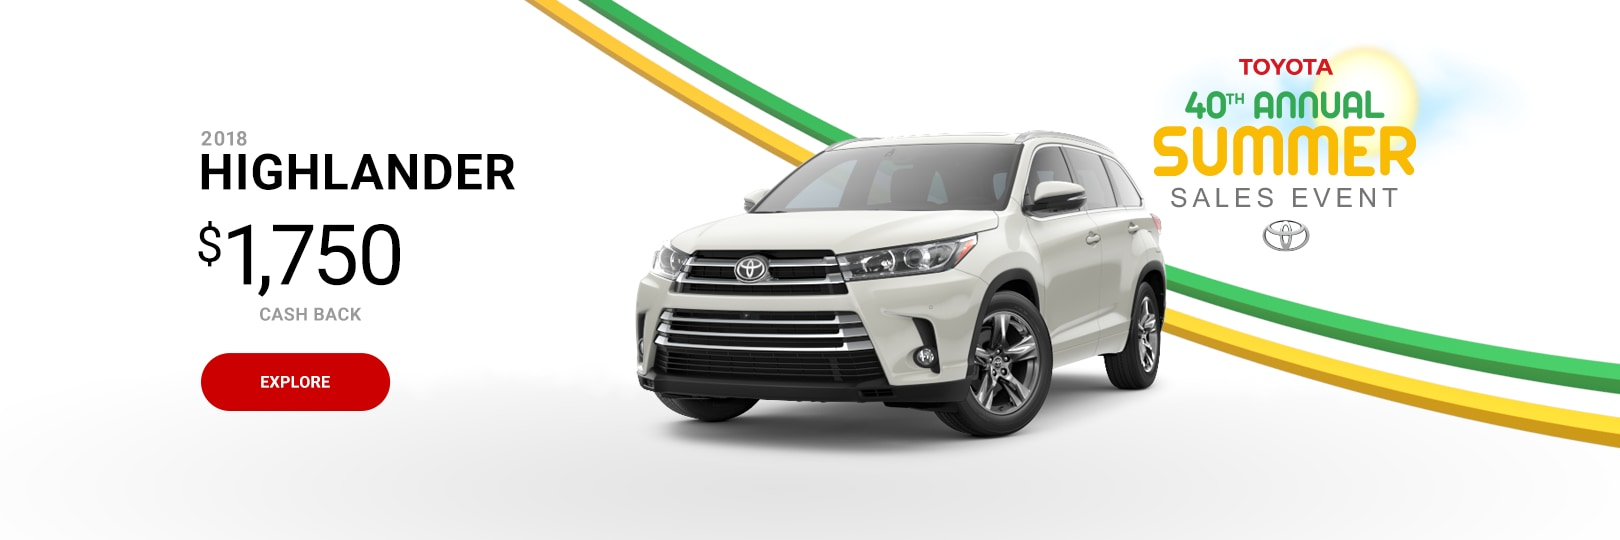 Walker Toyota   New Toyota & Used Cars in Miamisburg, OH near Dayton